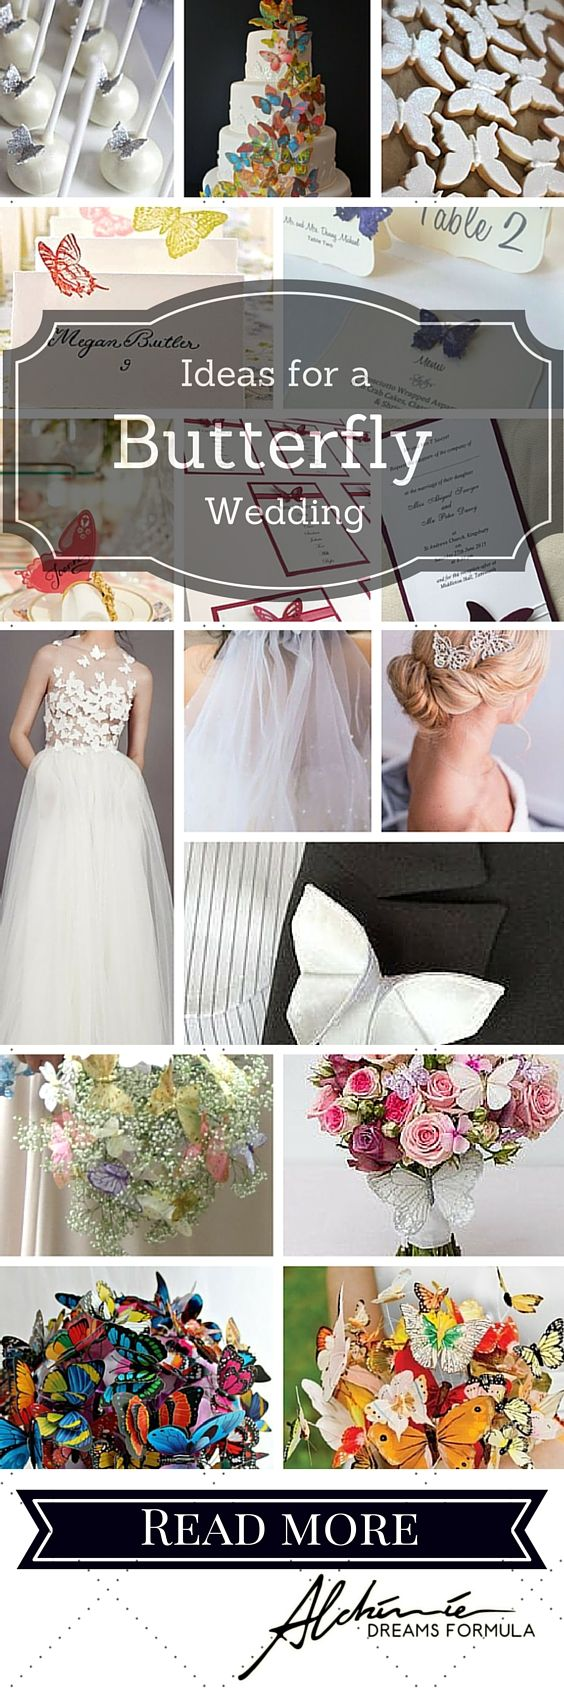 afternoon tewedding theme ideas%0A Amazing ideas for a fabulous butterfly wedding